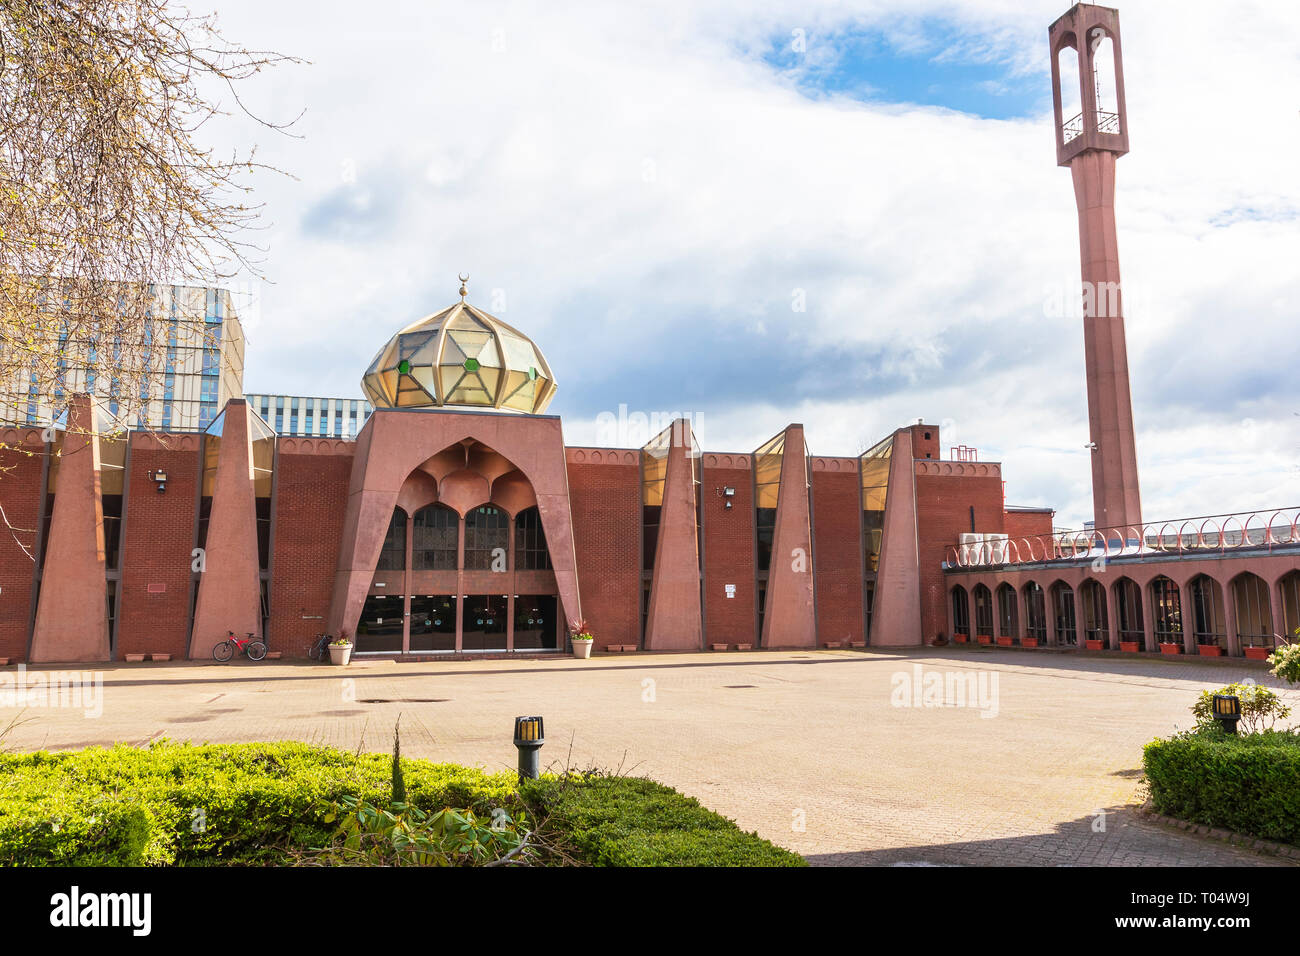 Glasgow Central Mosque, Gorbals, Glasgow, UK. The mosque, situated next to the River Clyde, and is the central mosque for Muslims of Islamic and Sunni - Stock Image